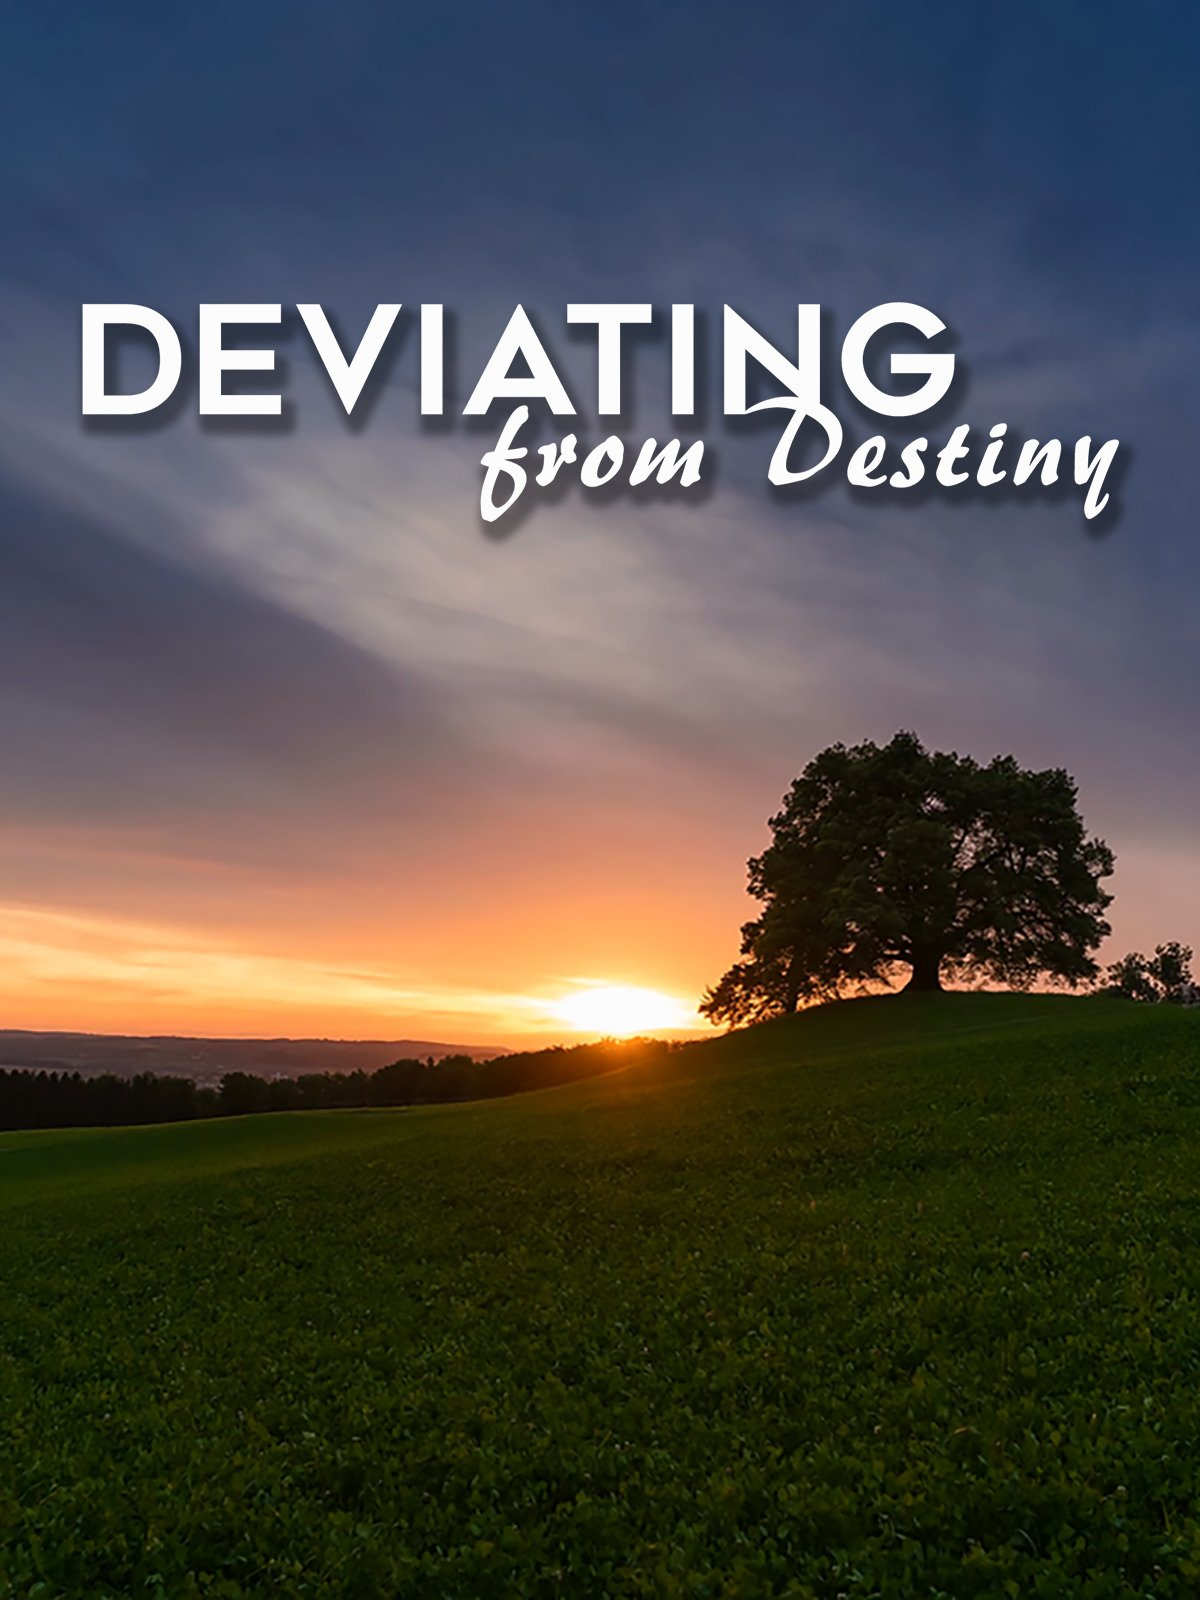 Deviating from Destiny